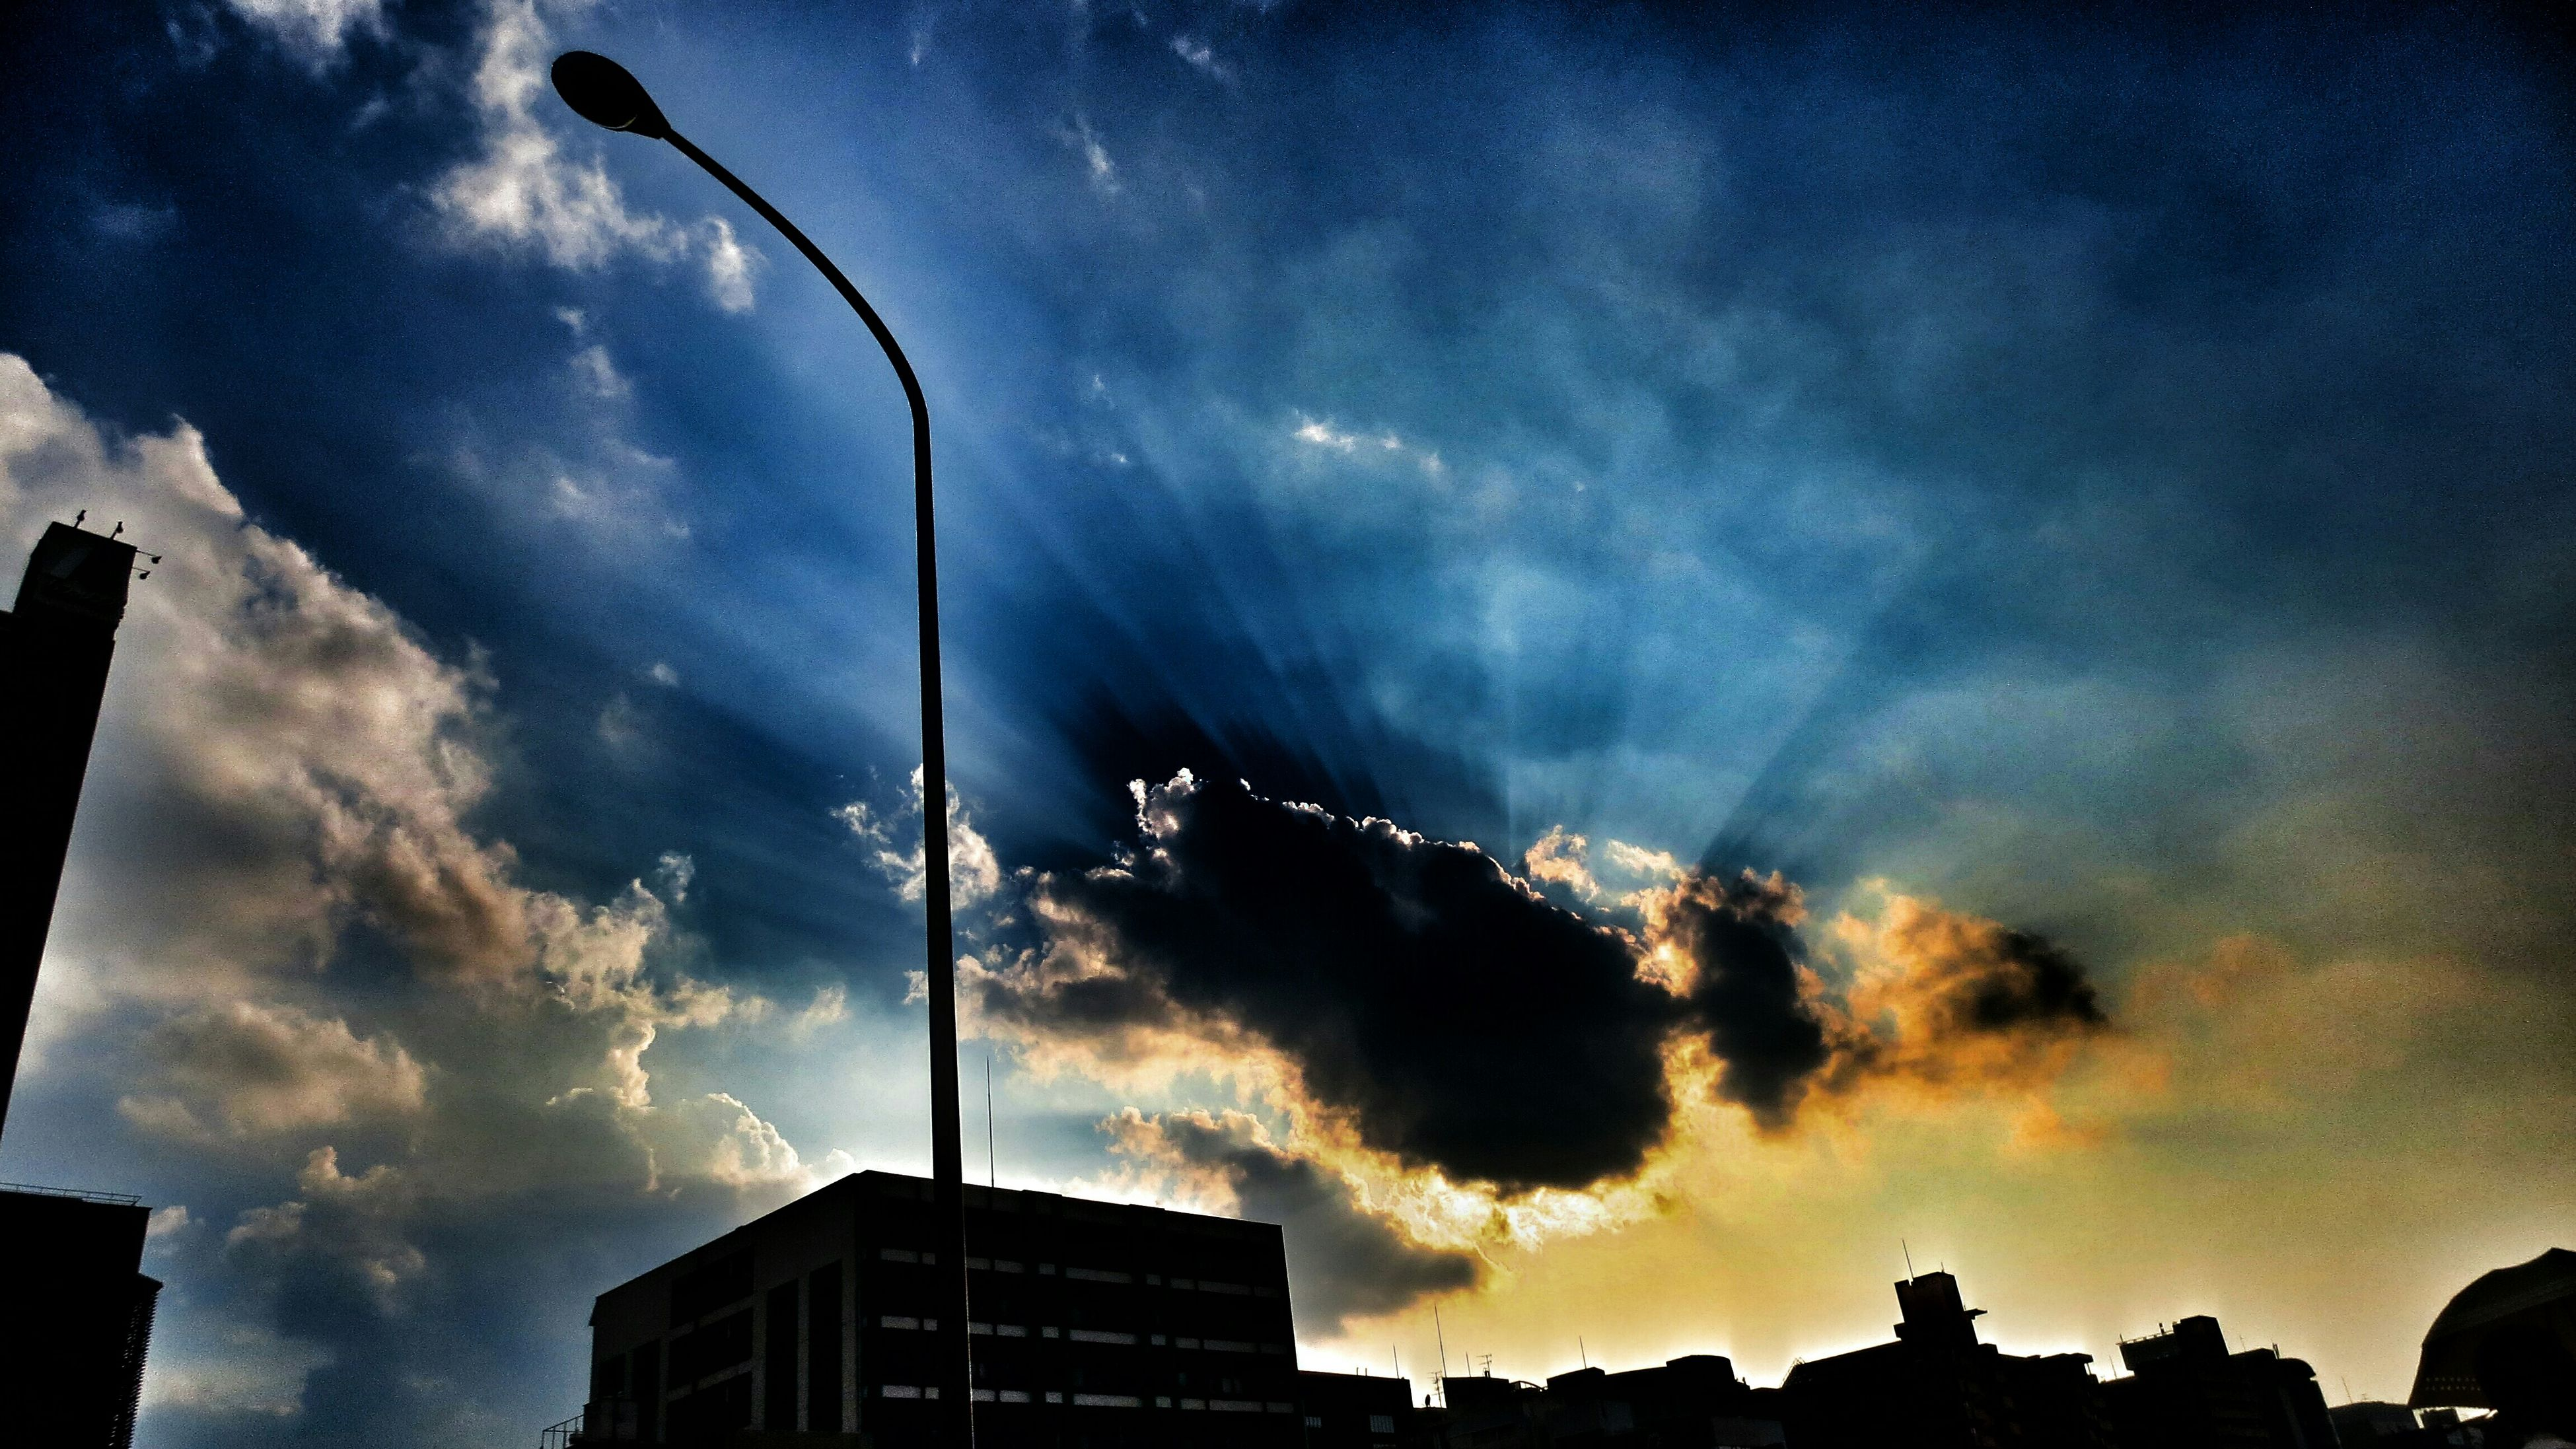 low angle view, sky, cloud - sky, built structure, building exterior, silhouette, street light, architecture, cloudy, cloud, lighting equipment, high section, weather, dusk, building, outdoors, sunset, no people, overcast, nature